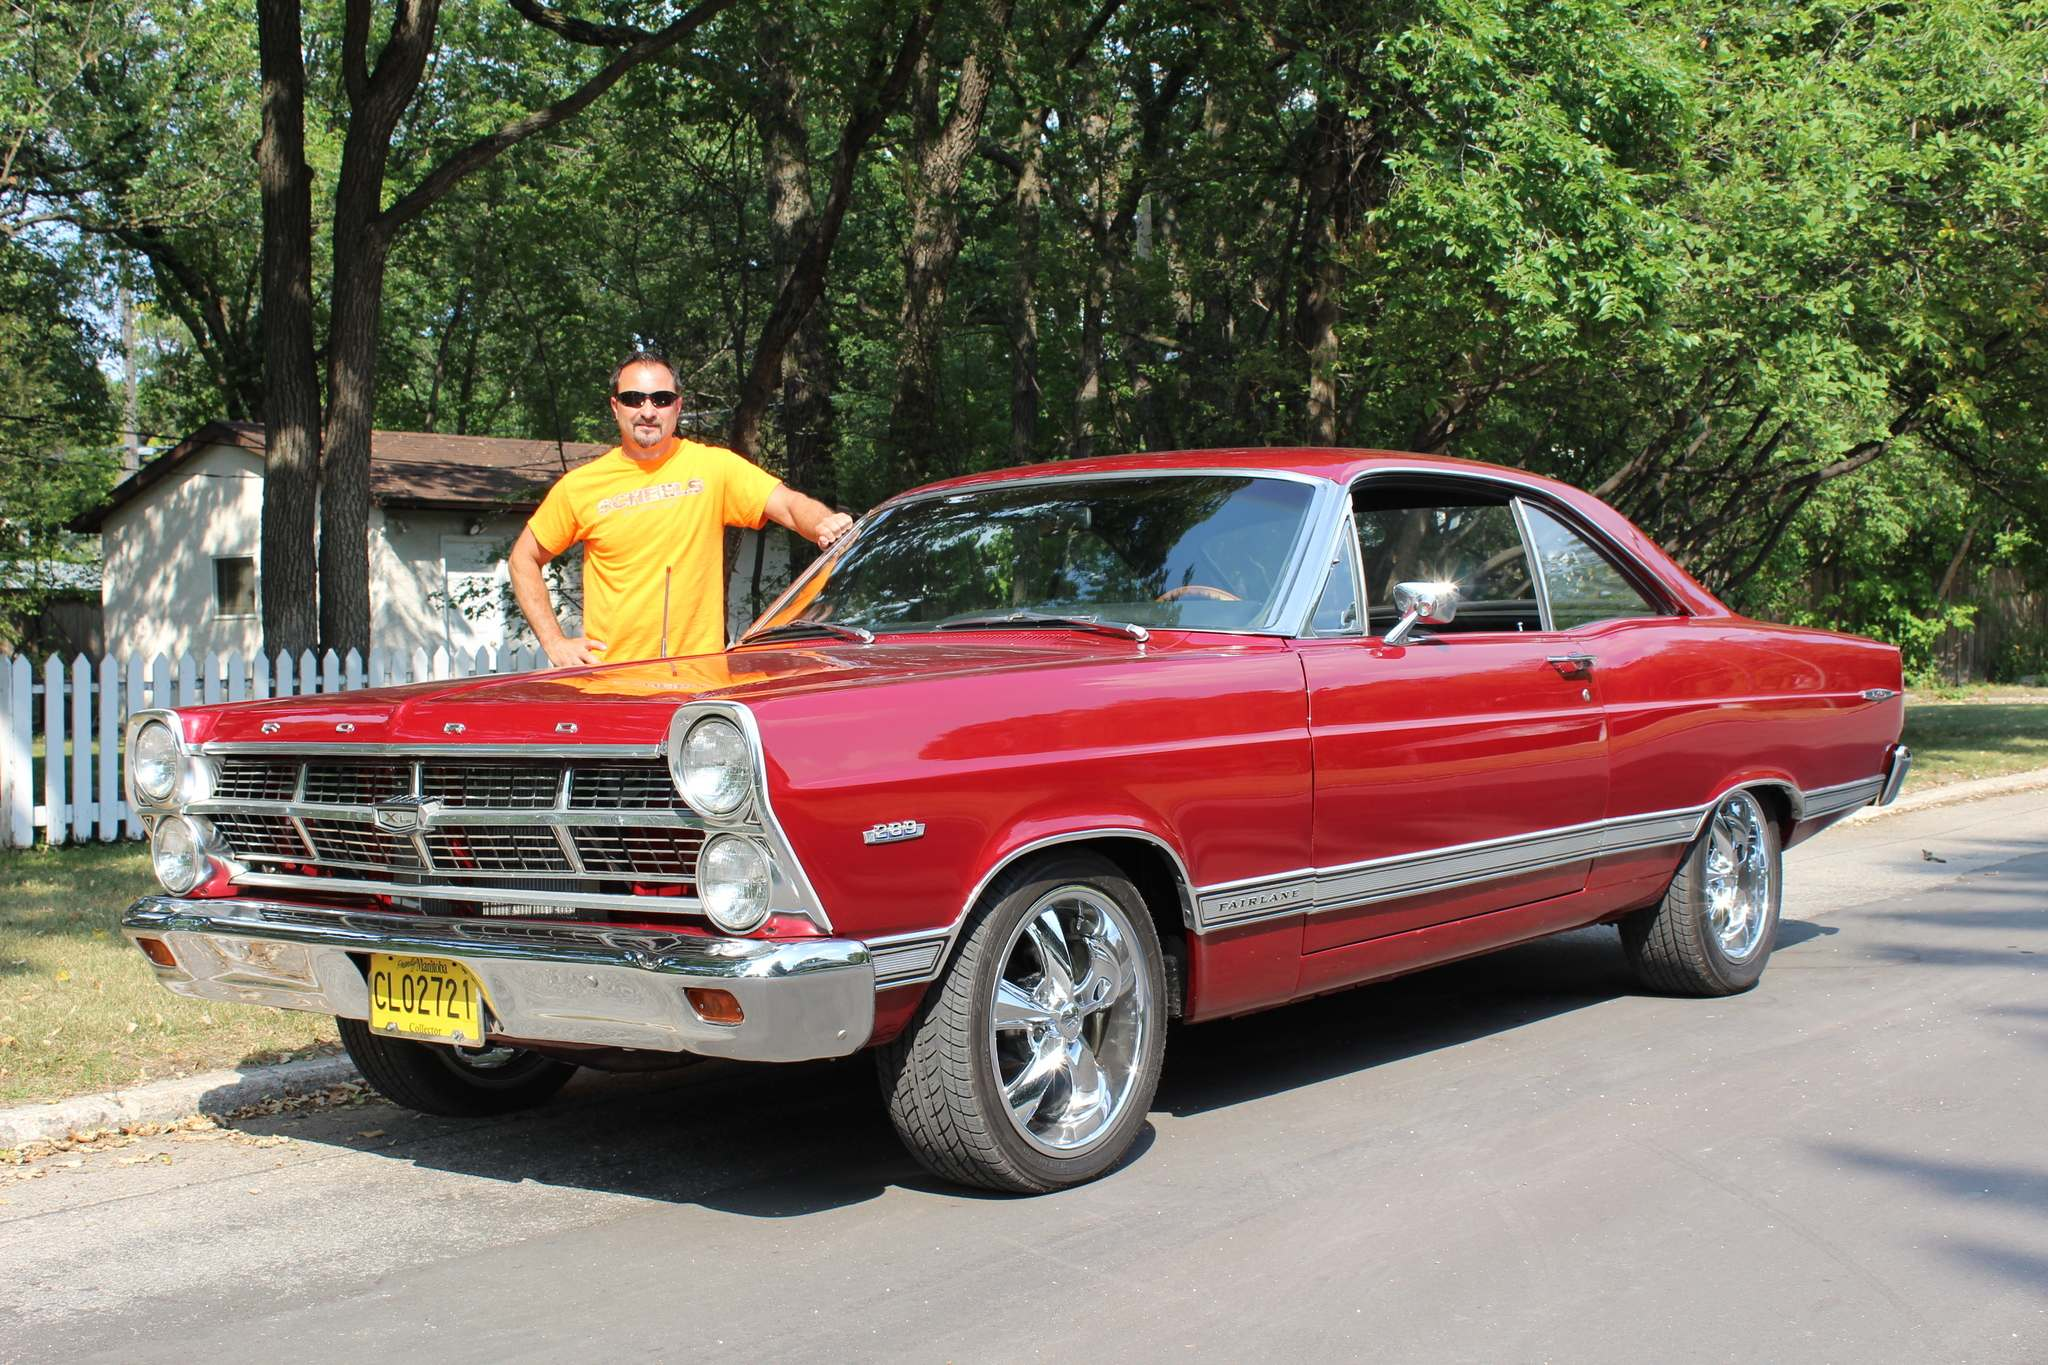 Automotive News Ford Fairlane A Solid Desired Collectible 1964 Bucket Seats Photos By Larry Dargis Winnipeg Free Press